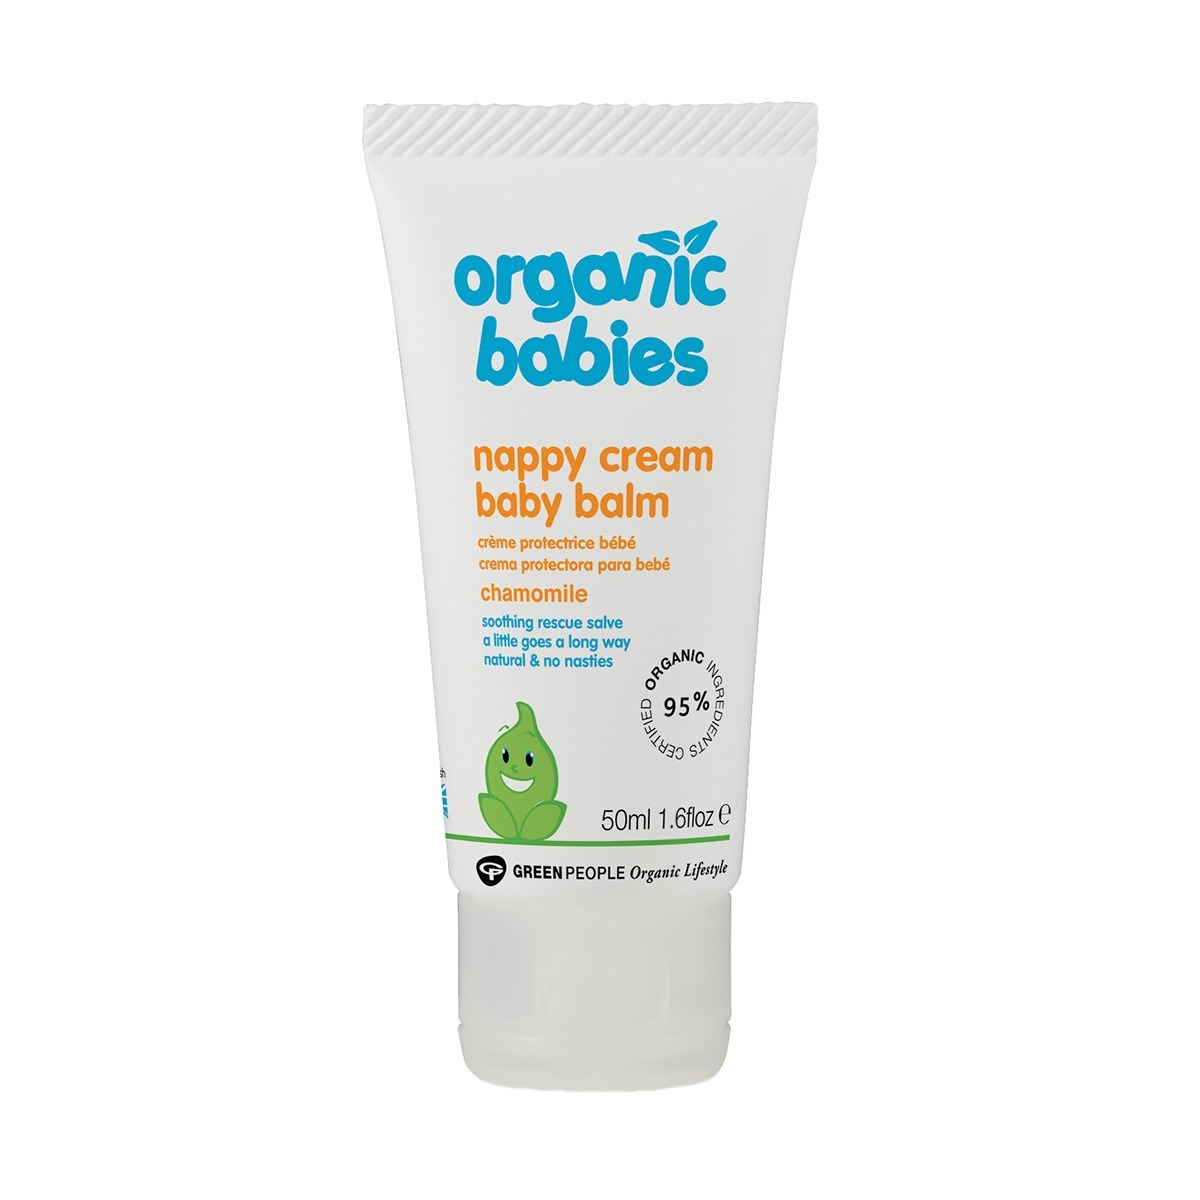 Green People Organic Babies Nappy Cream Baby Balm